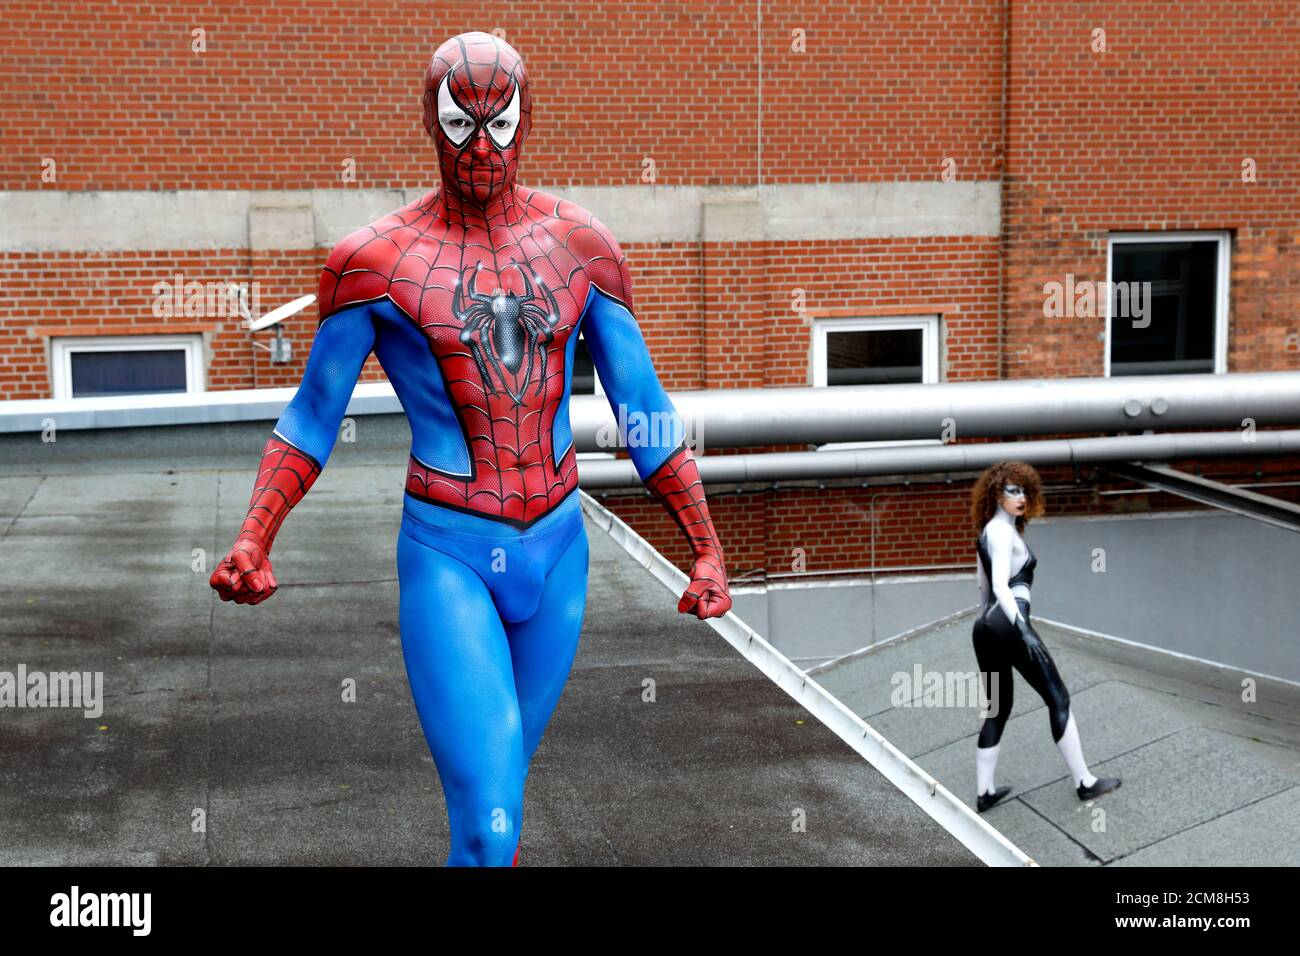 GEEK ART - Bodypainting and Transformaking: Spider-Man and Spider-Gwen photoshooting with Patrick Kiel and Lena Kiel at the Hefehof in Hamelin on September 15, 2020 - A project by the photographer Tschiponnique Skupin and the bodypainter Enrico Lein Stock Photo